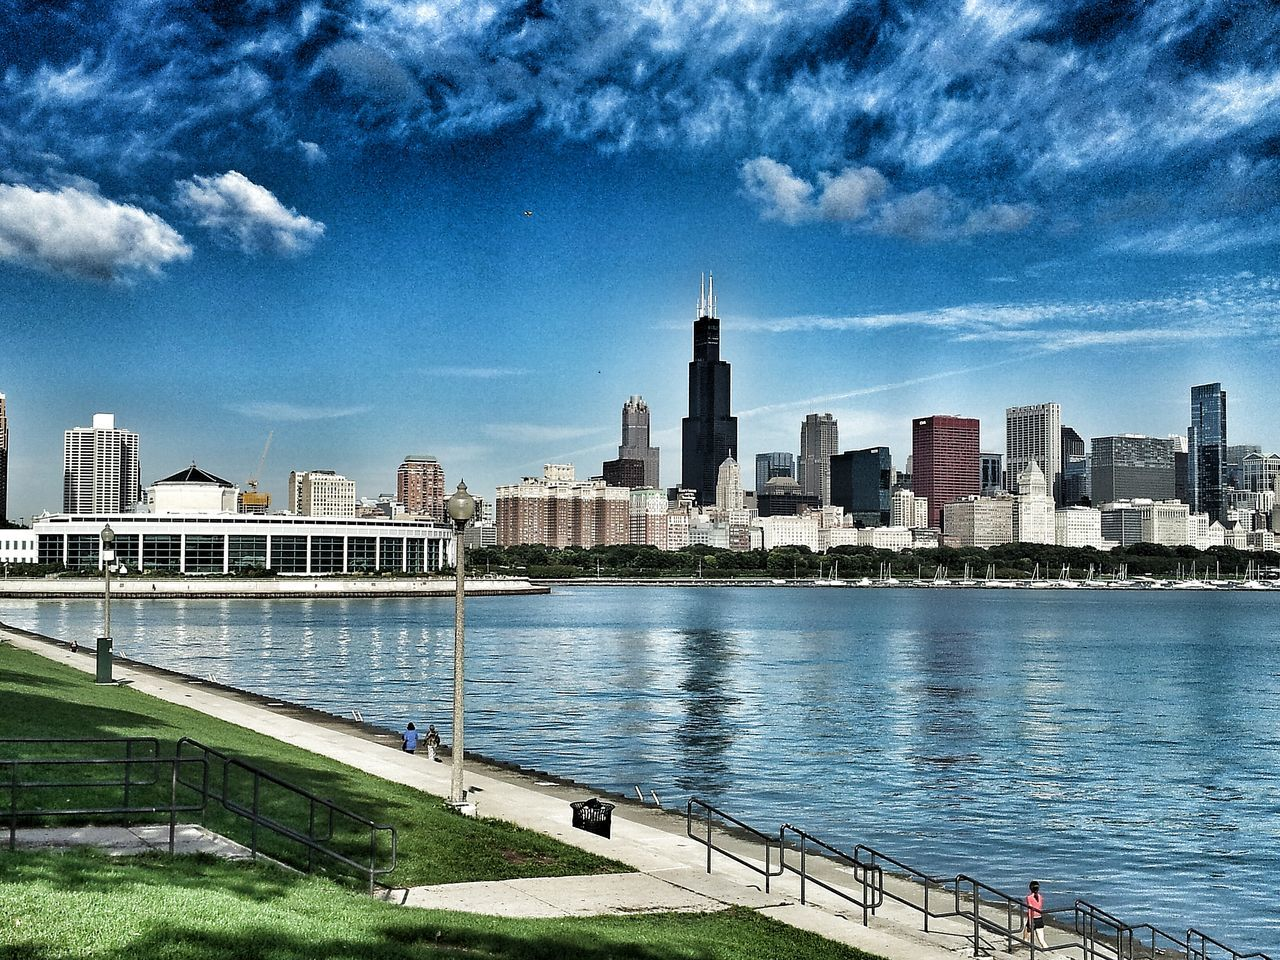 architecture, built structure, building exterior, water, sky, skyscraper, city, cloud - sky, day, river, modern, cityscape, outdoors, blue, urban skyline, growth, travel destinations, no people, nature